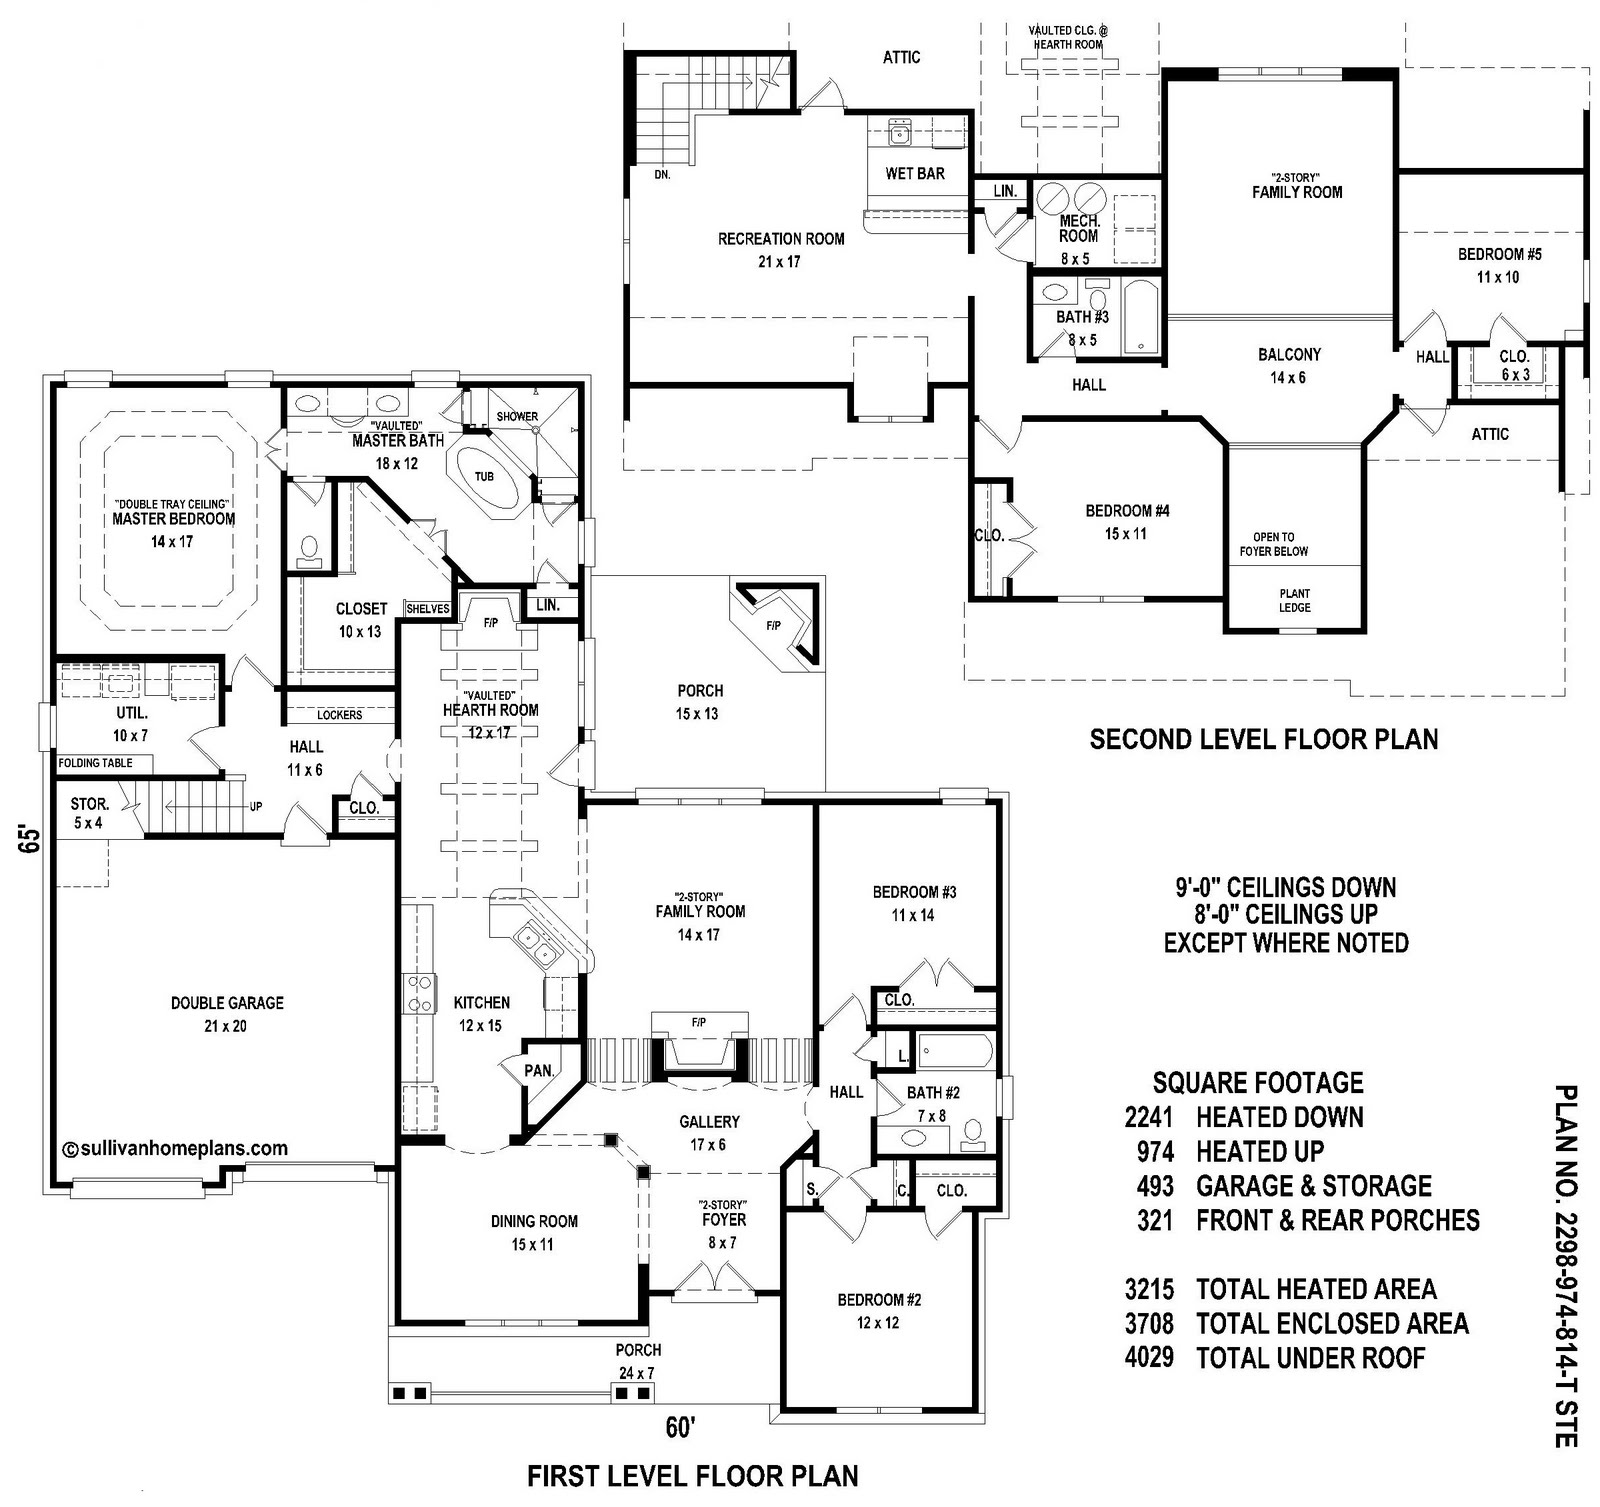 Sullivan home plans june 2010 for 5 bedroom 5 bathroom house plans